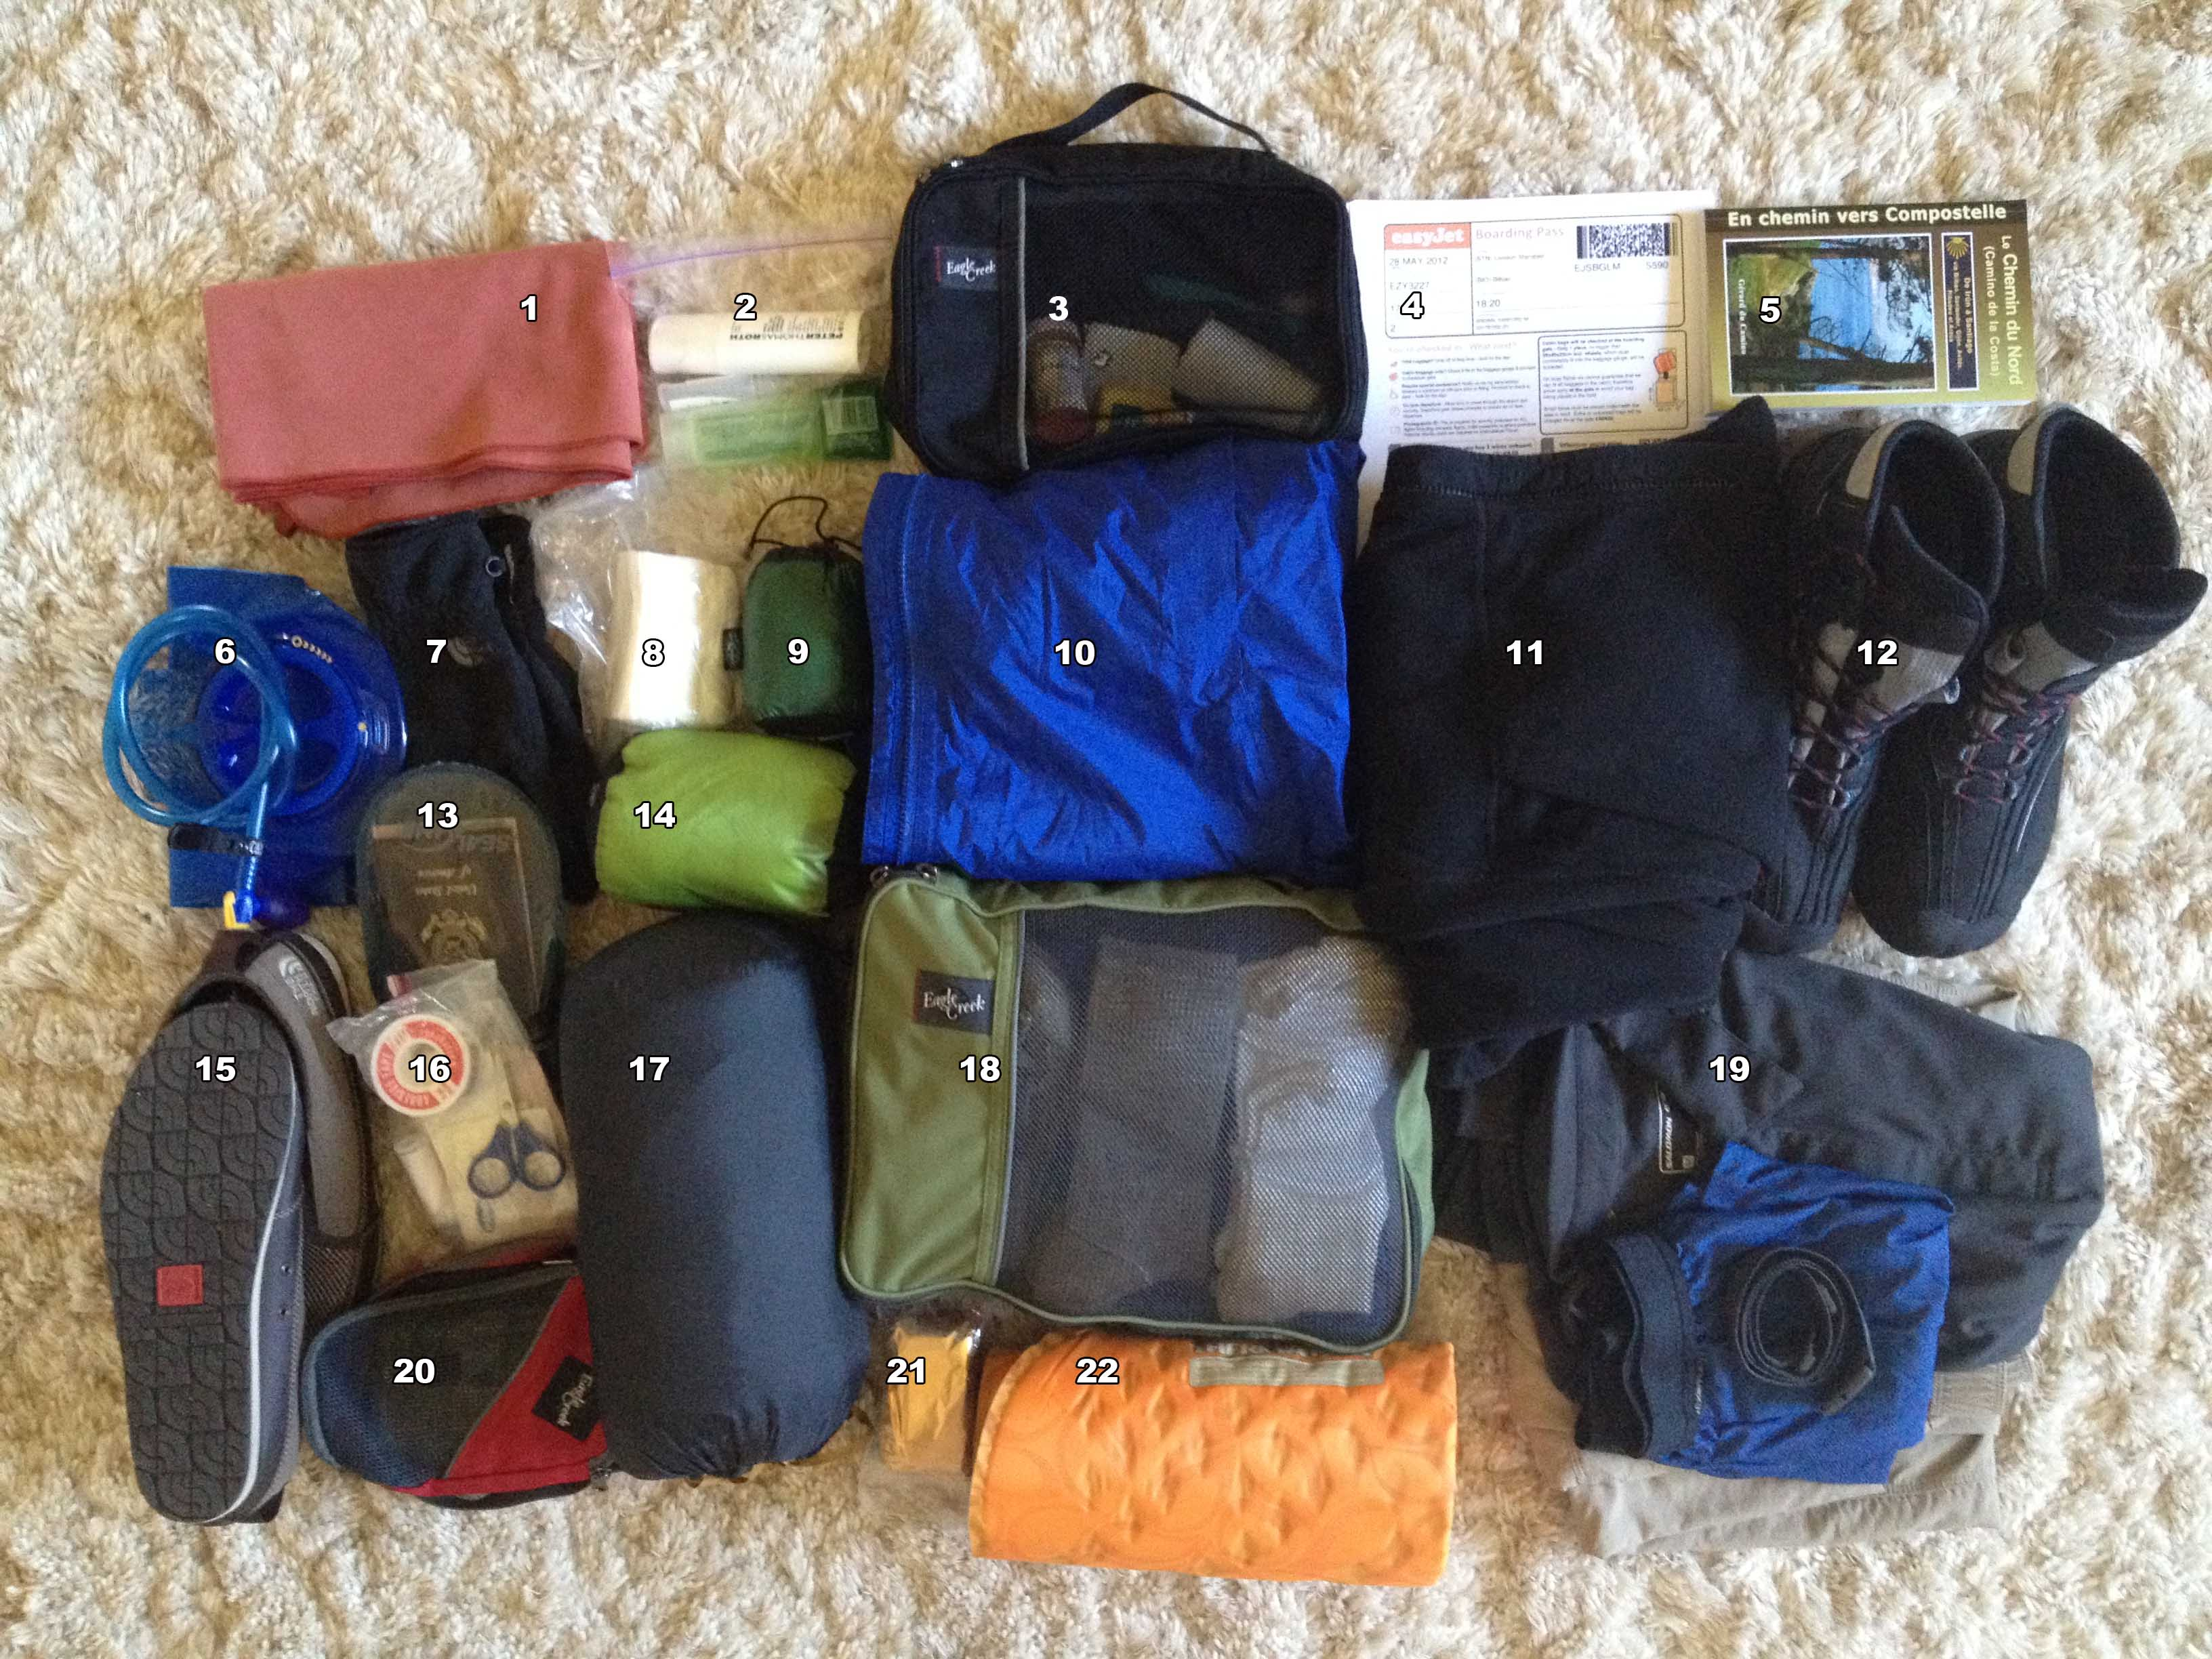 Camino Santiago Packing List Packing List Caminoist